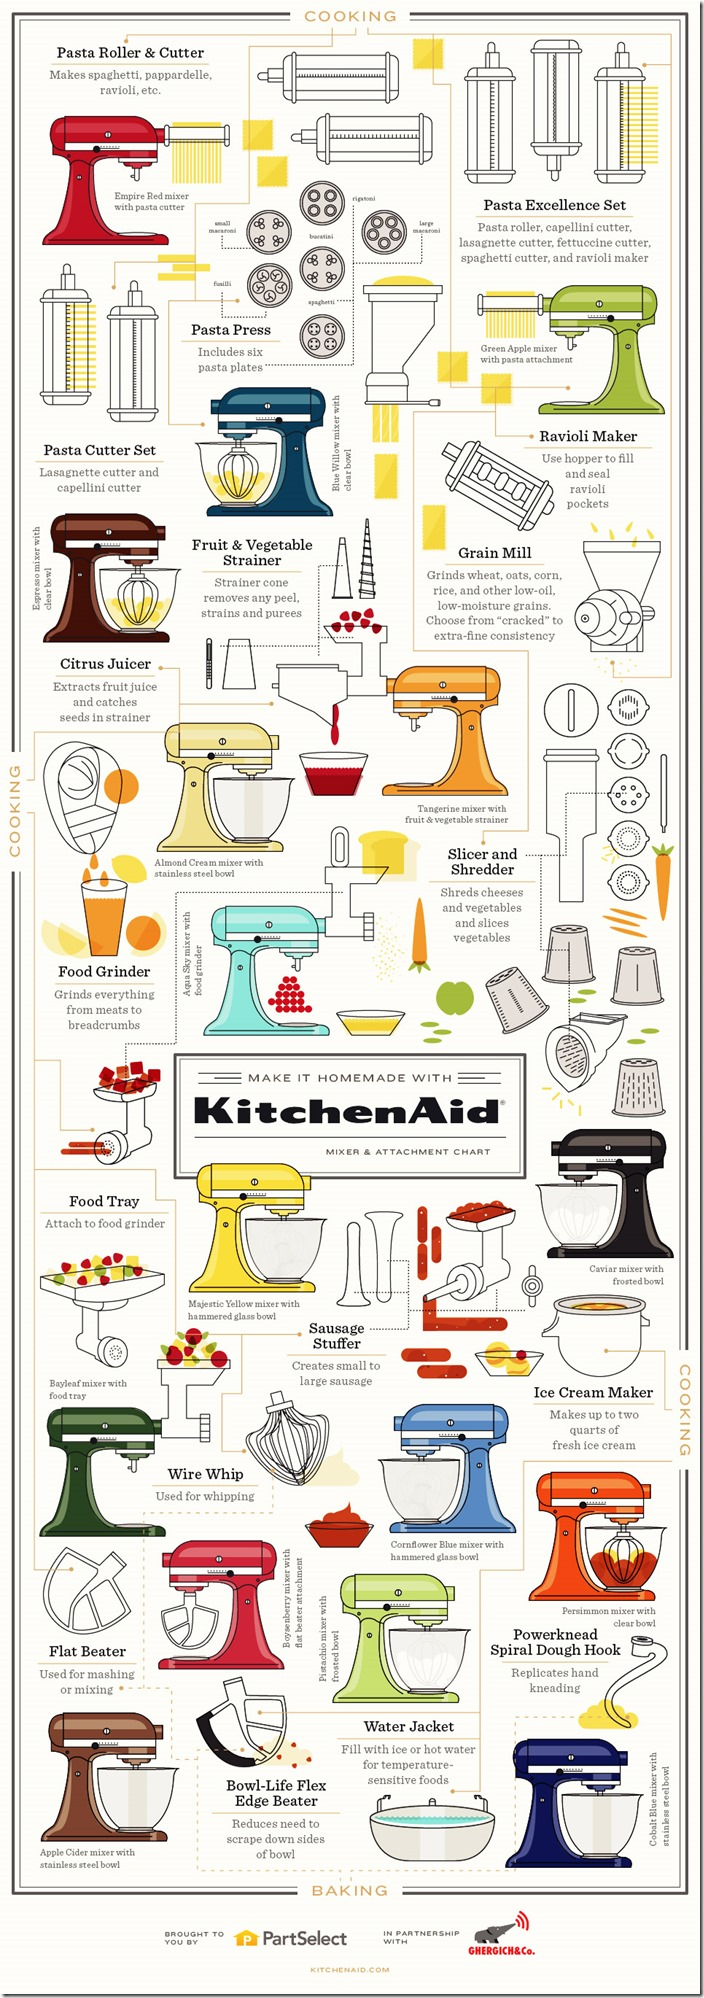 make-it-homemade-with-kitchenaid-mixer--attachment-chart_52fe016279b4f